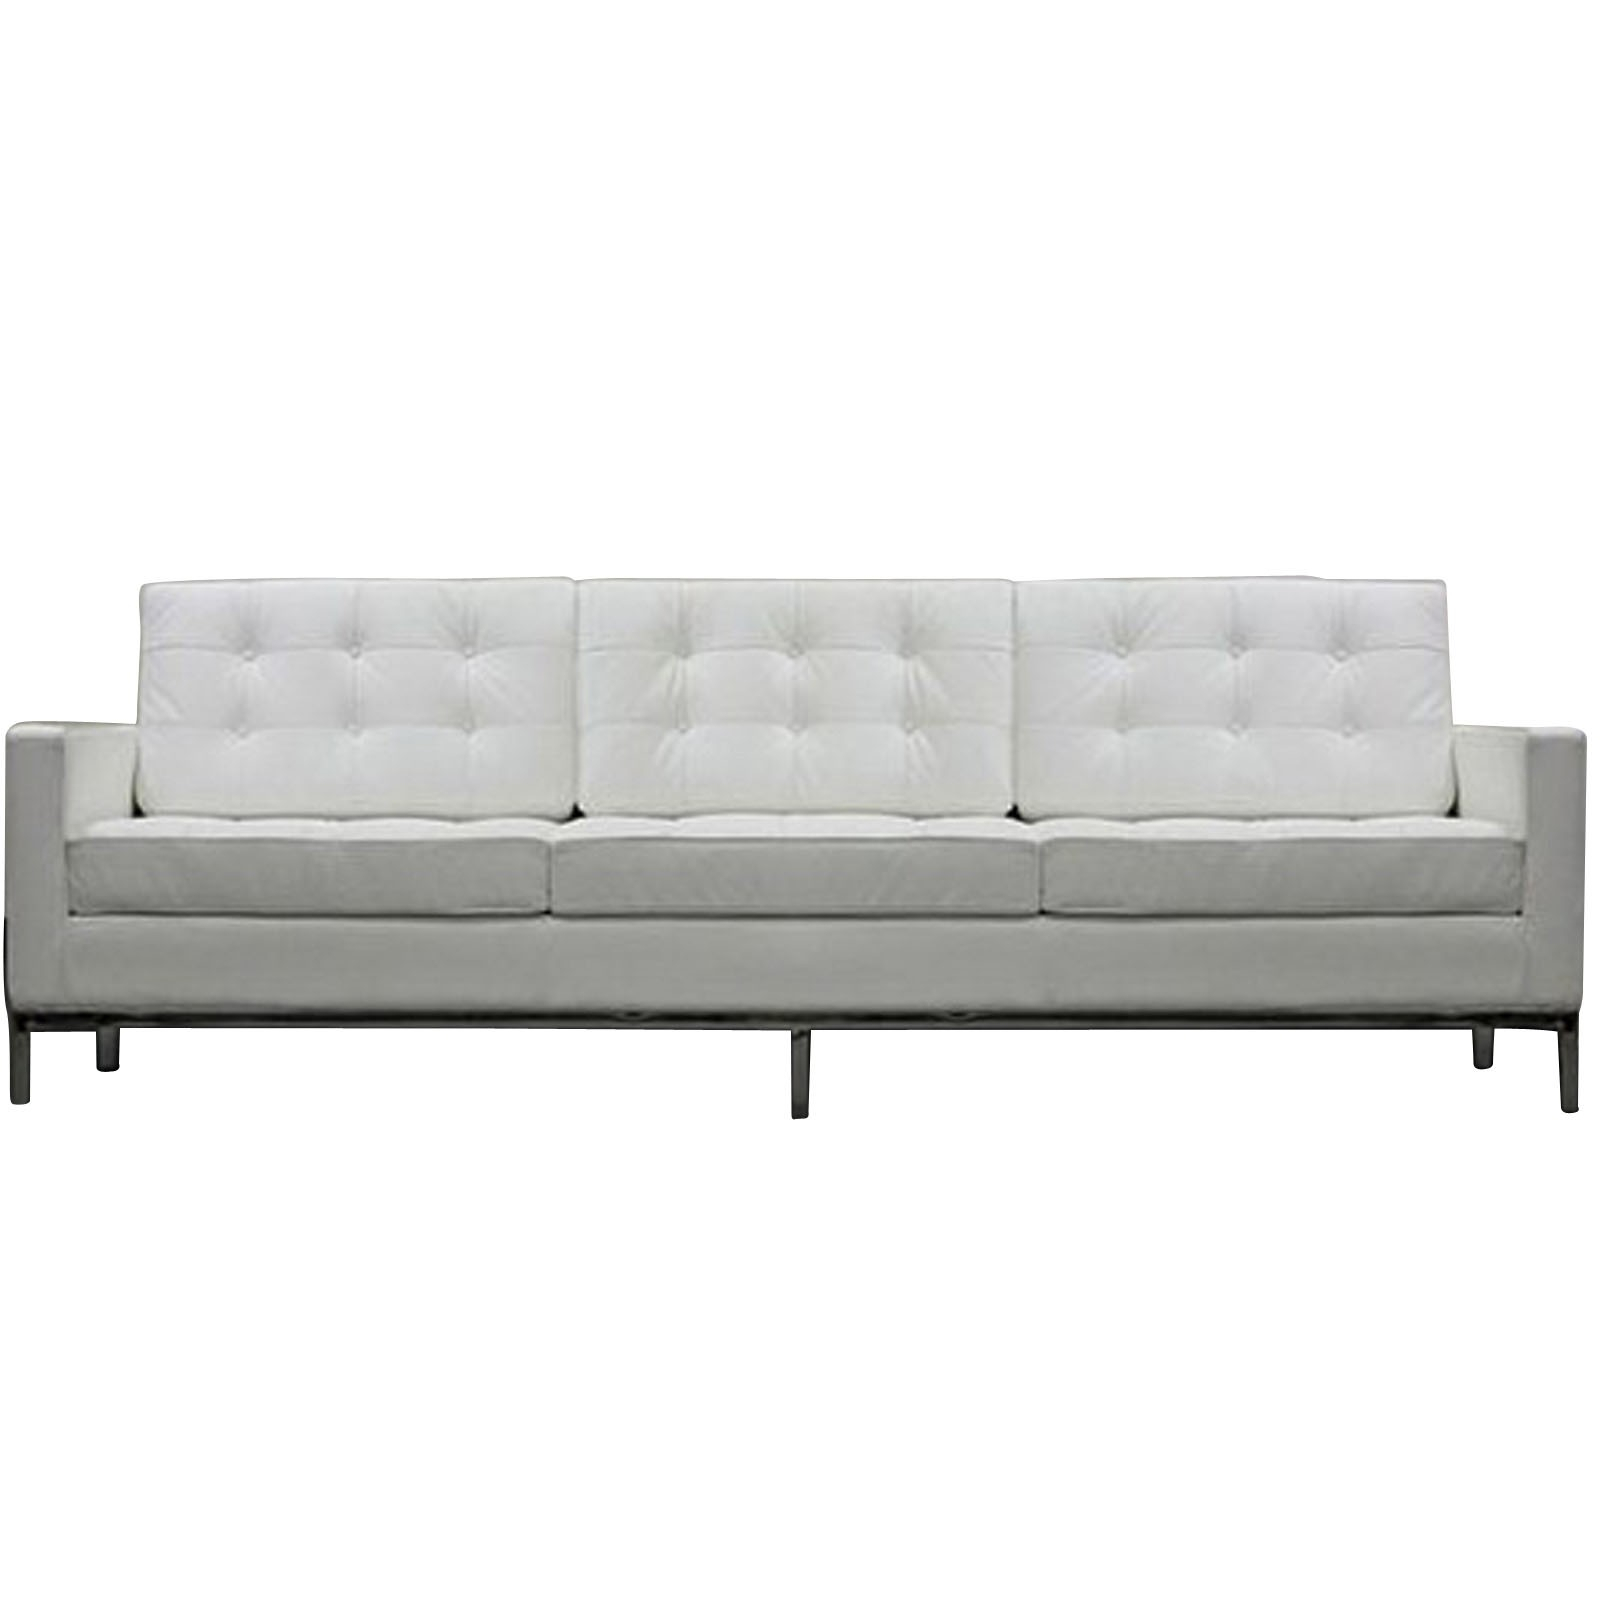 Florence Knoll Style Sofa Couch – Leather Pertaining To Florence Leather Sofas (View 8 of 15)